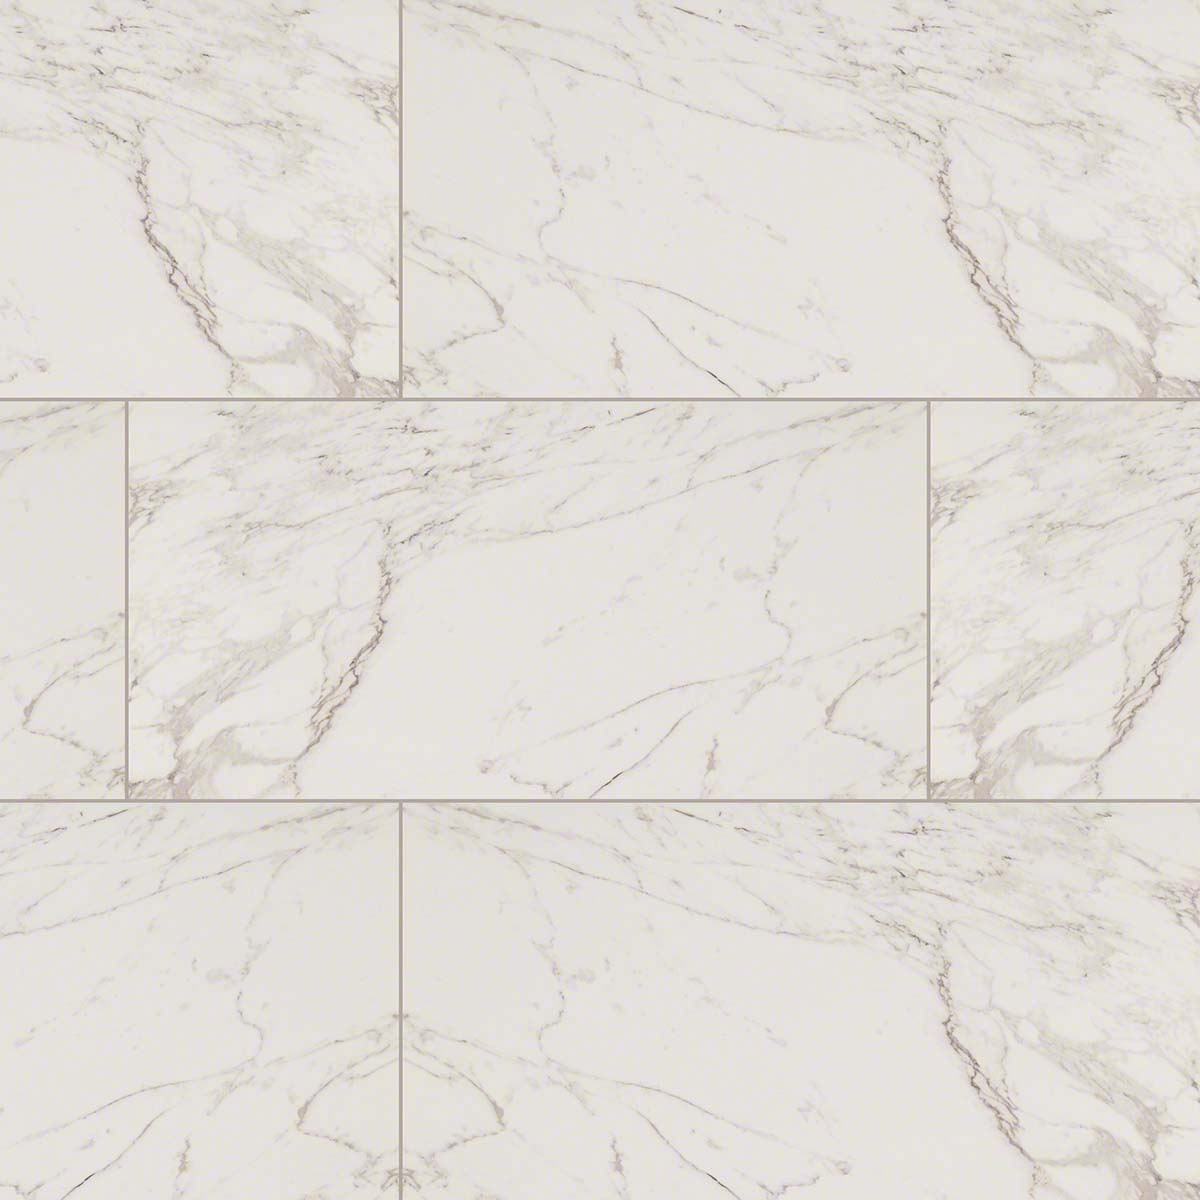 Marble Looking Tile 12X24 Porcelain Tile  Art Of Tuscany